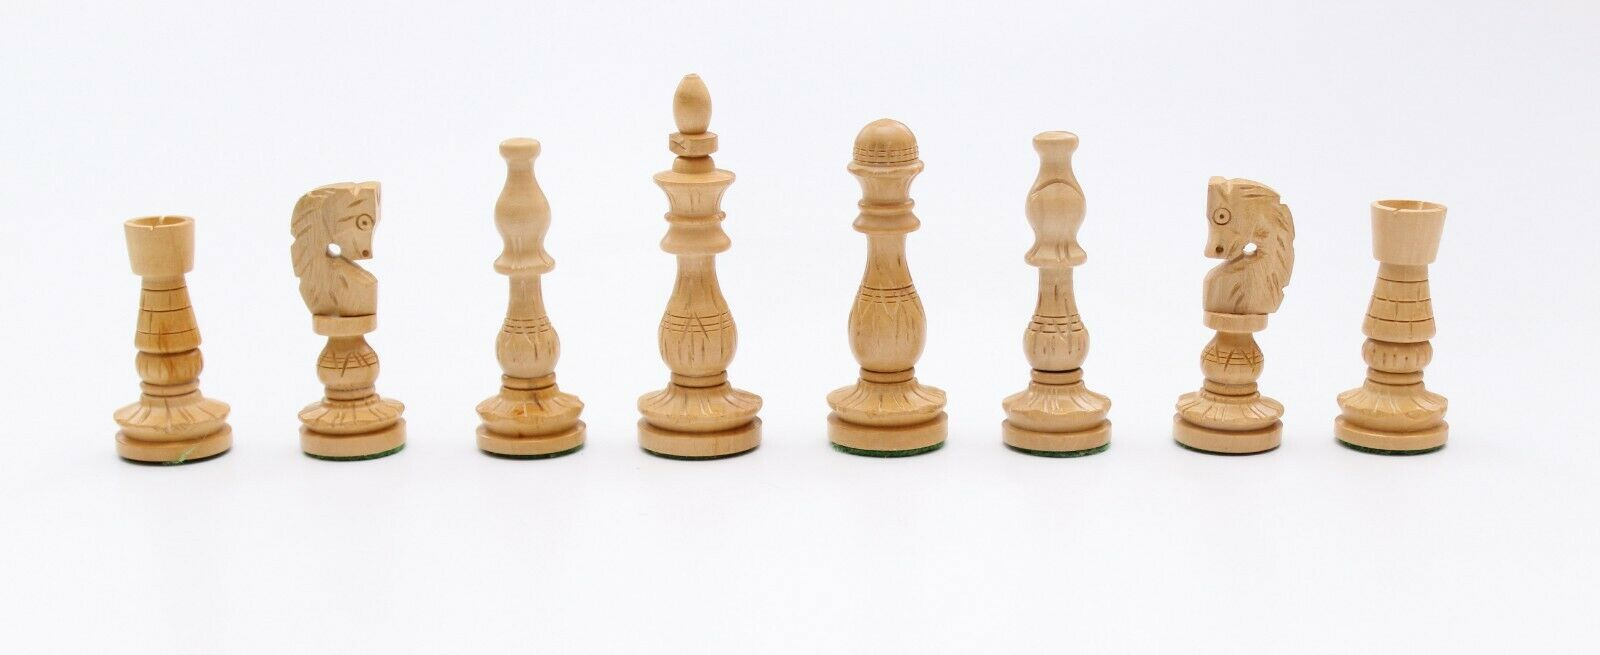 Mughal Antique Design Hand Made Luxury Chess Set - Pieces Only 3.6'' inch-King